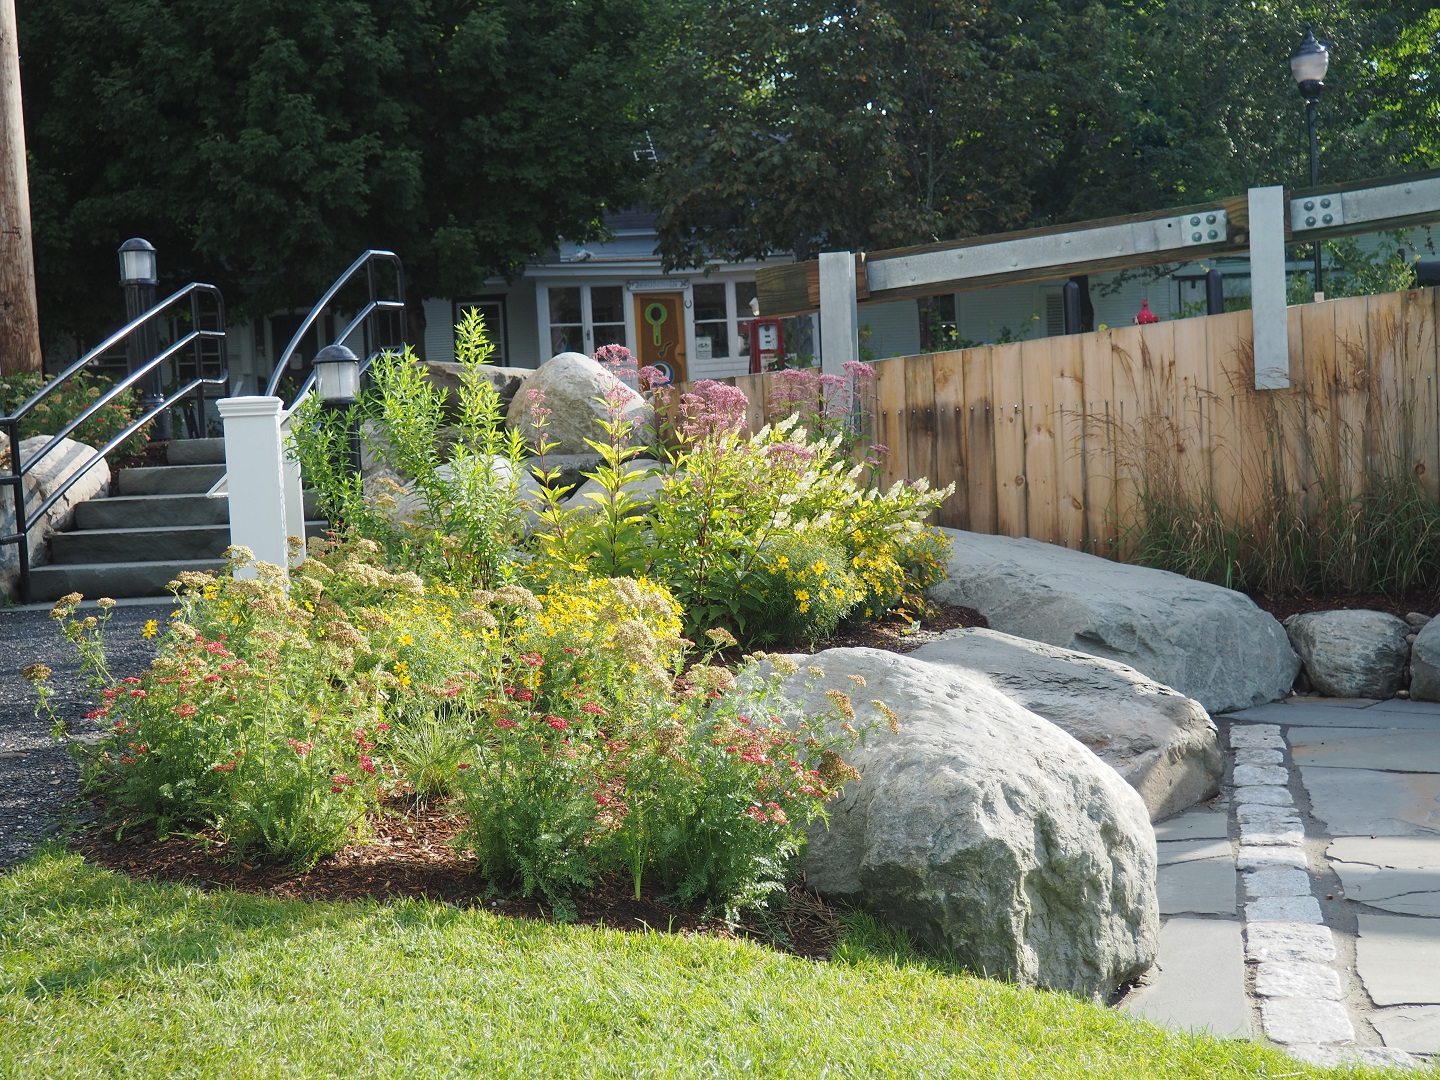 Commercial landscape maintenance in Colchester, VT